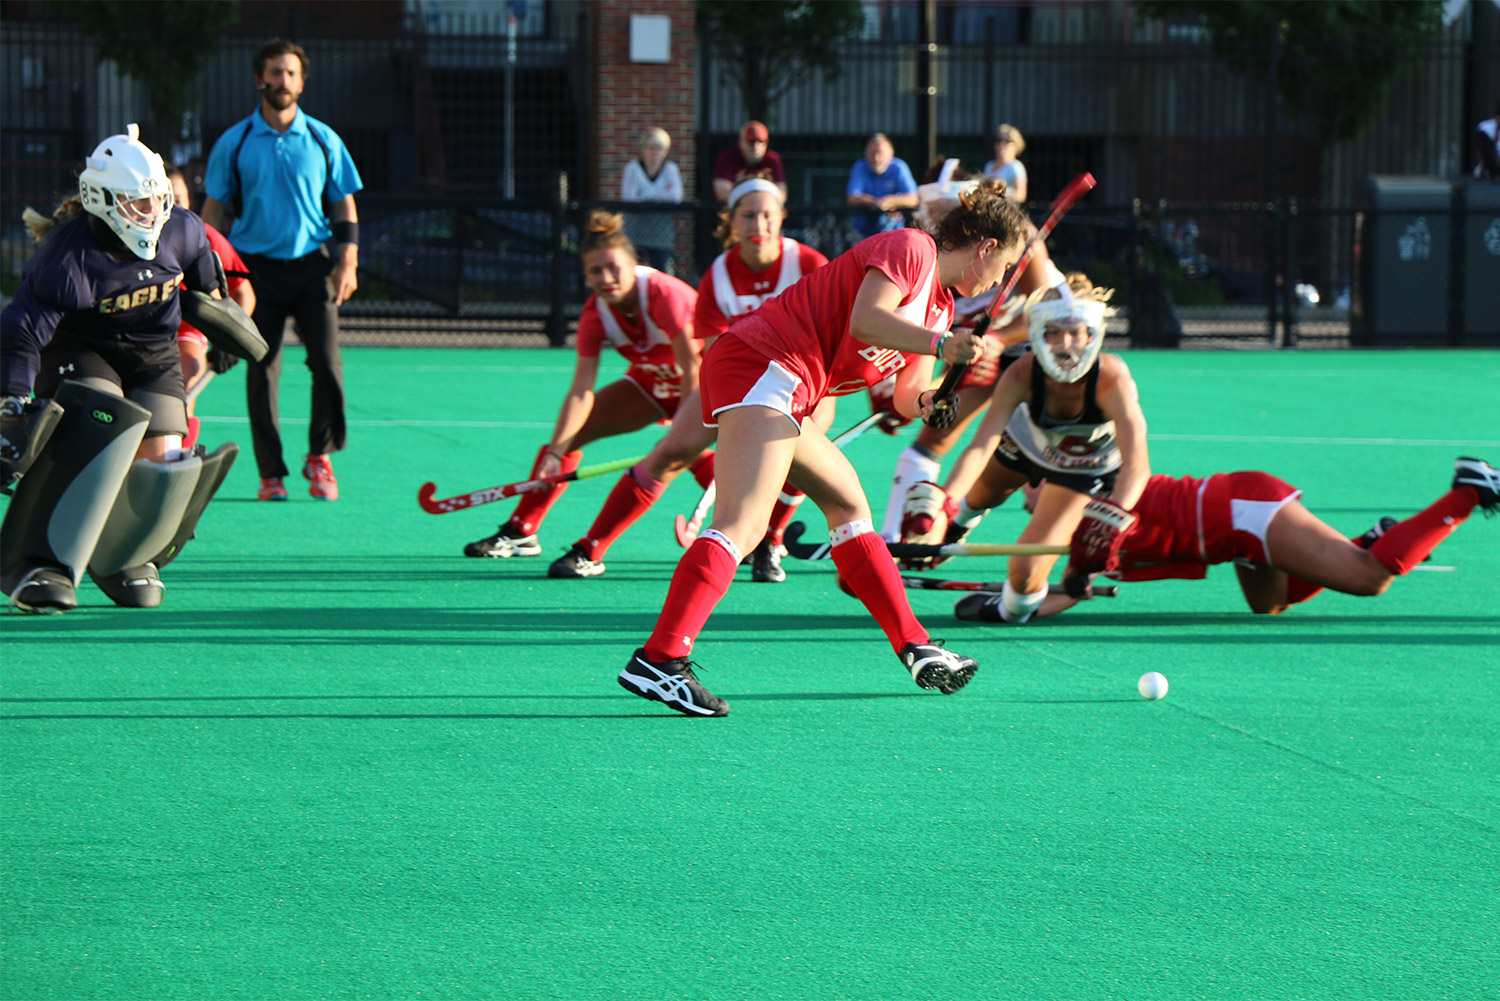 BU Terriers field hockey player Ailsa Connolly takes a shot during a game.